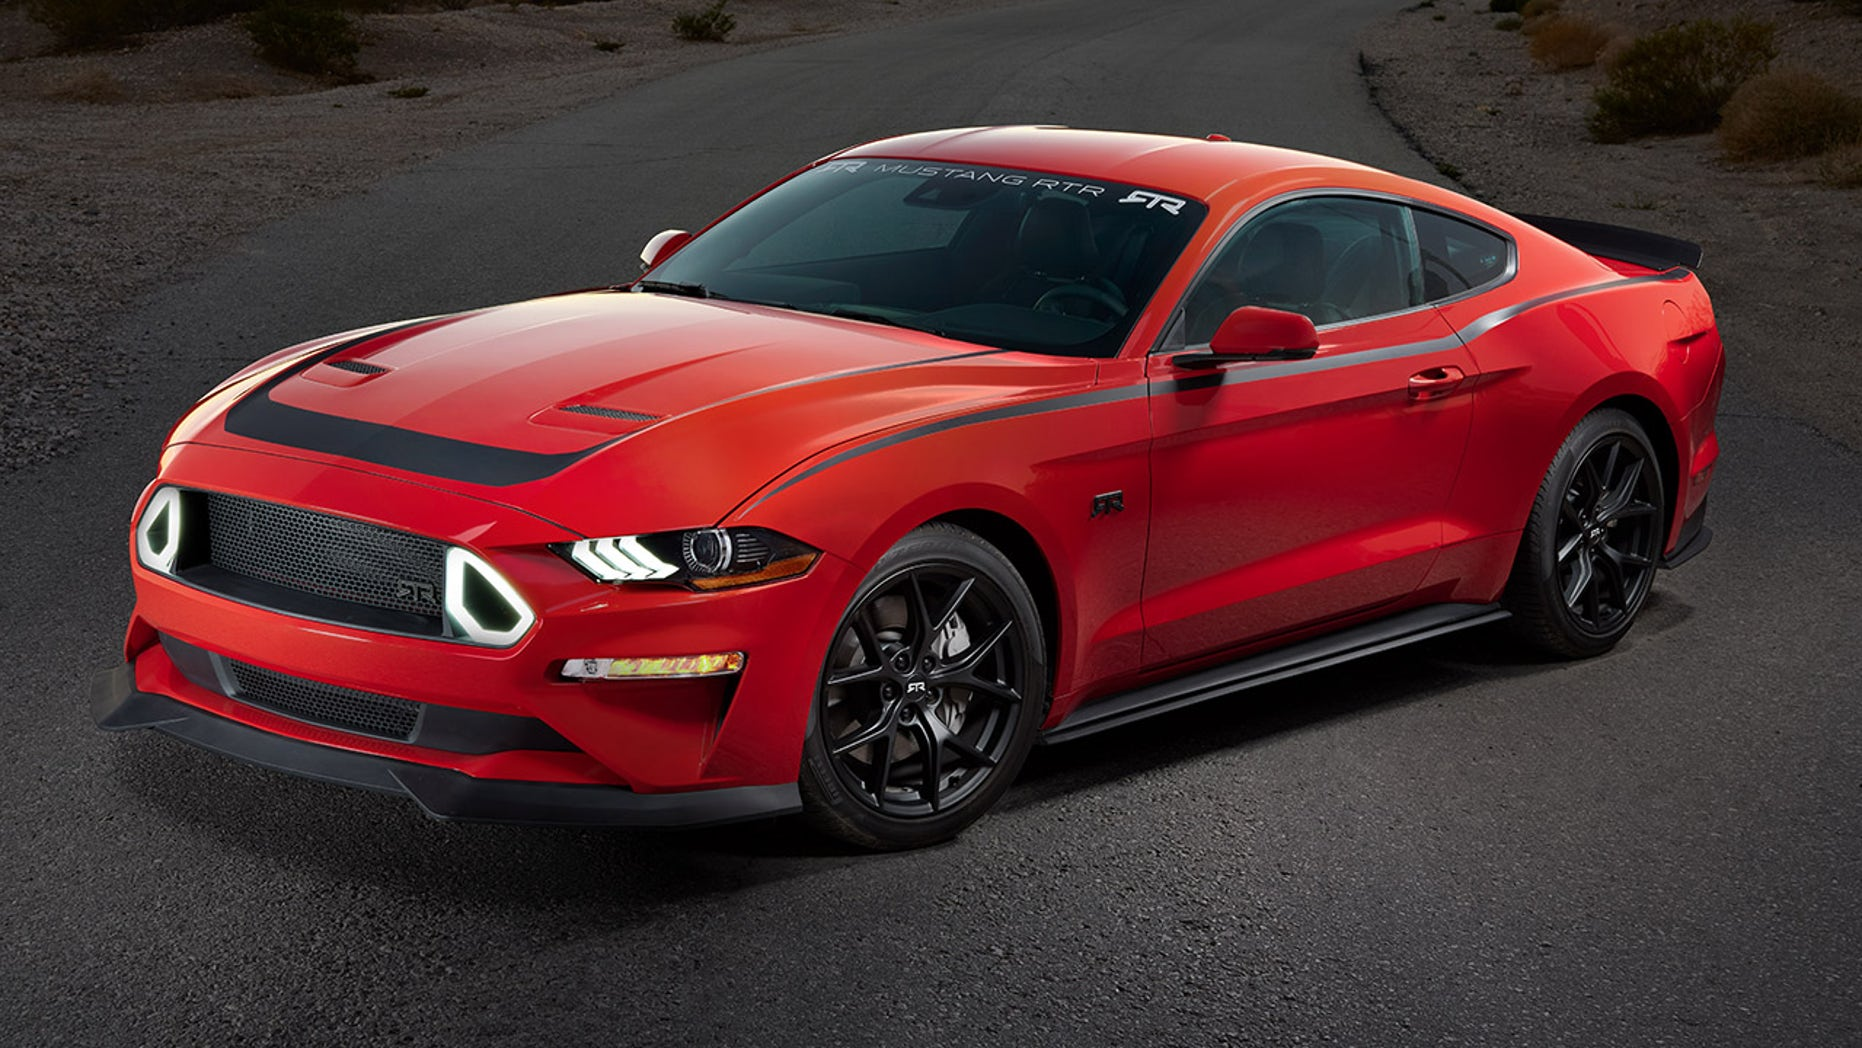 Ford Series 1 Mustang RTR drifting into dealers next year